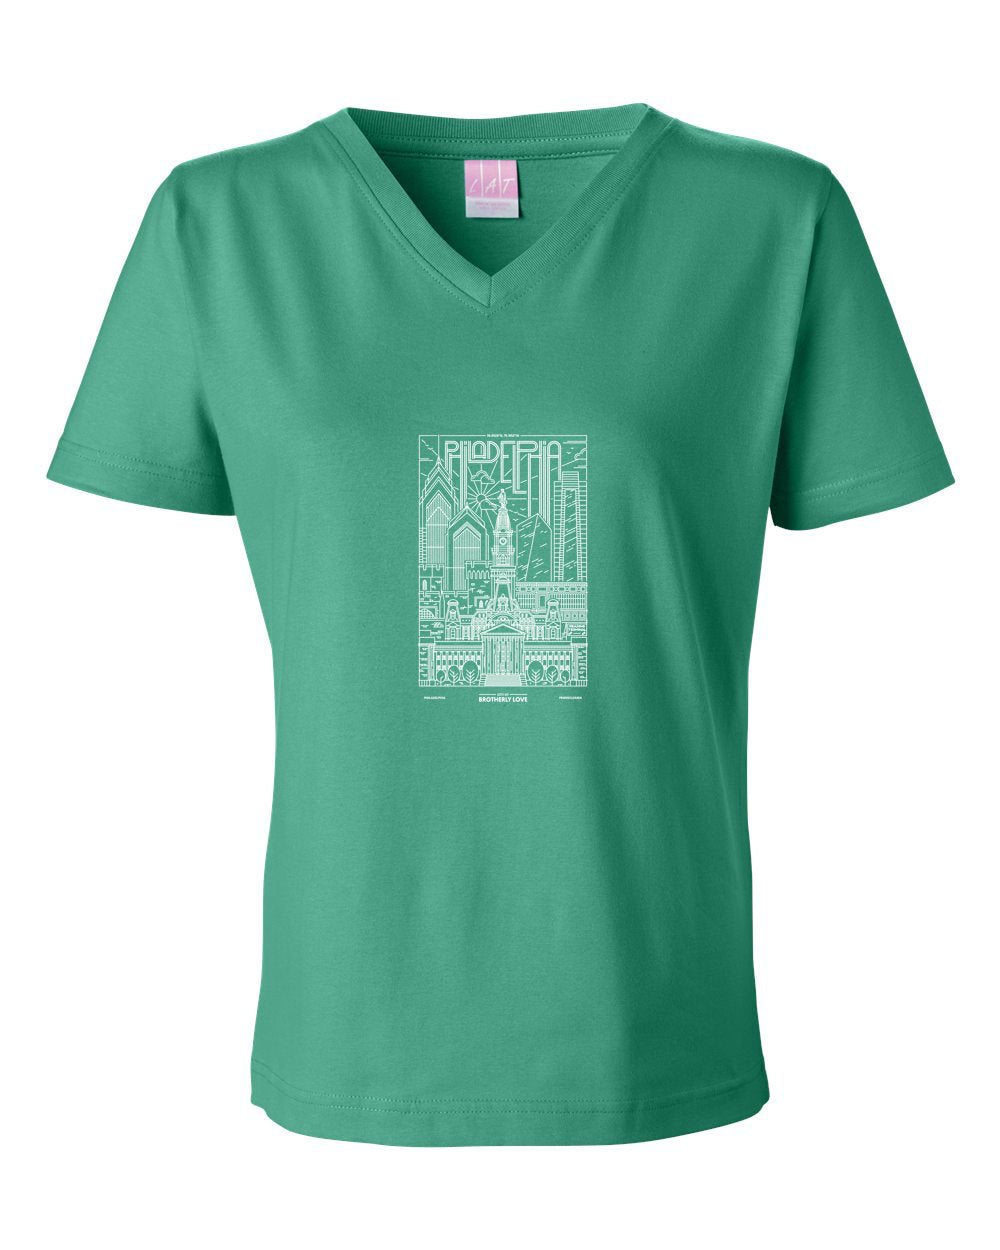 Philadelphia Skyline V2 (Football) LADIES Junior Fit V-Neck